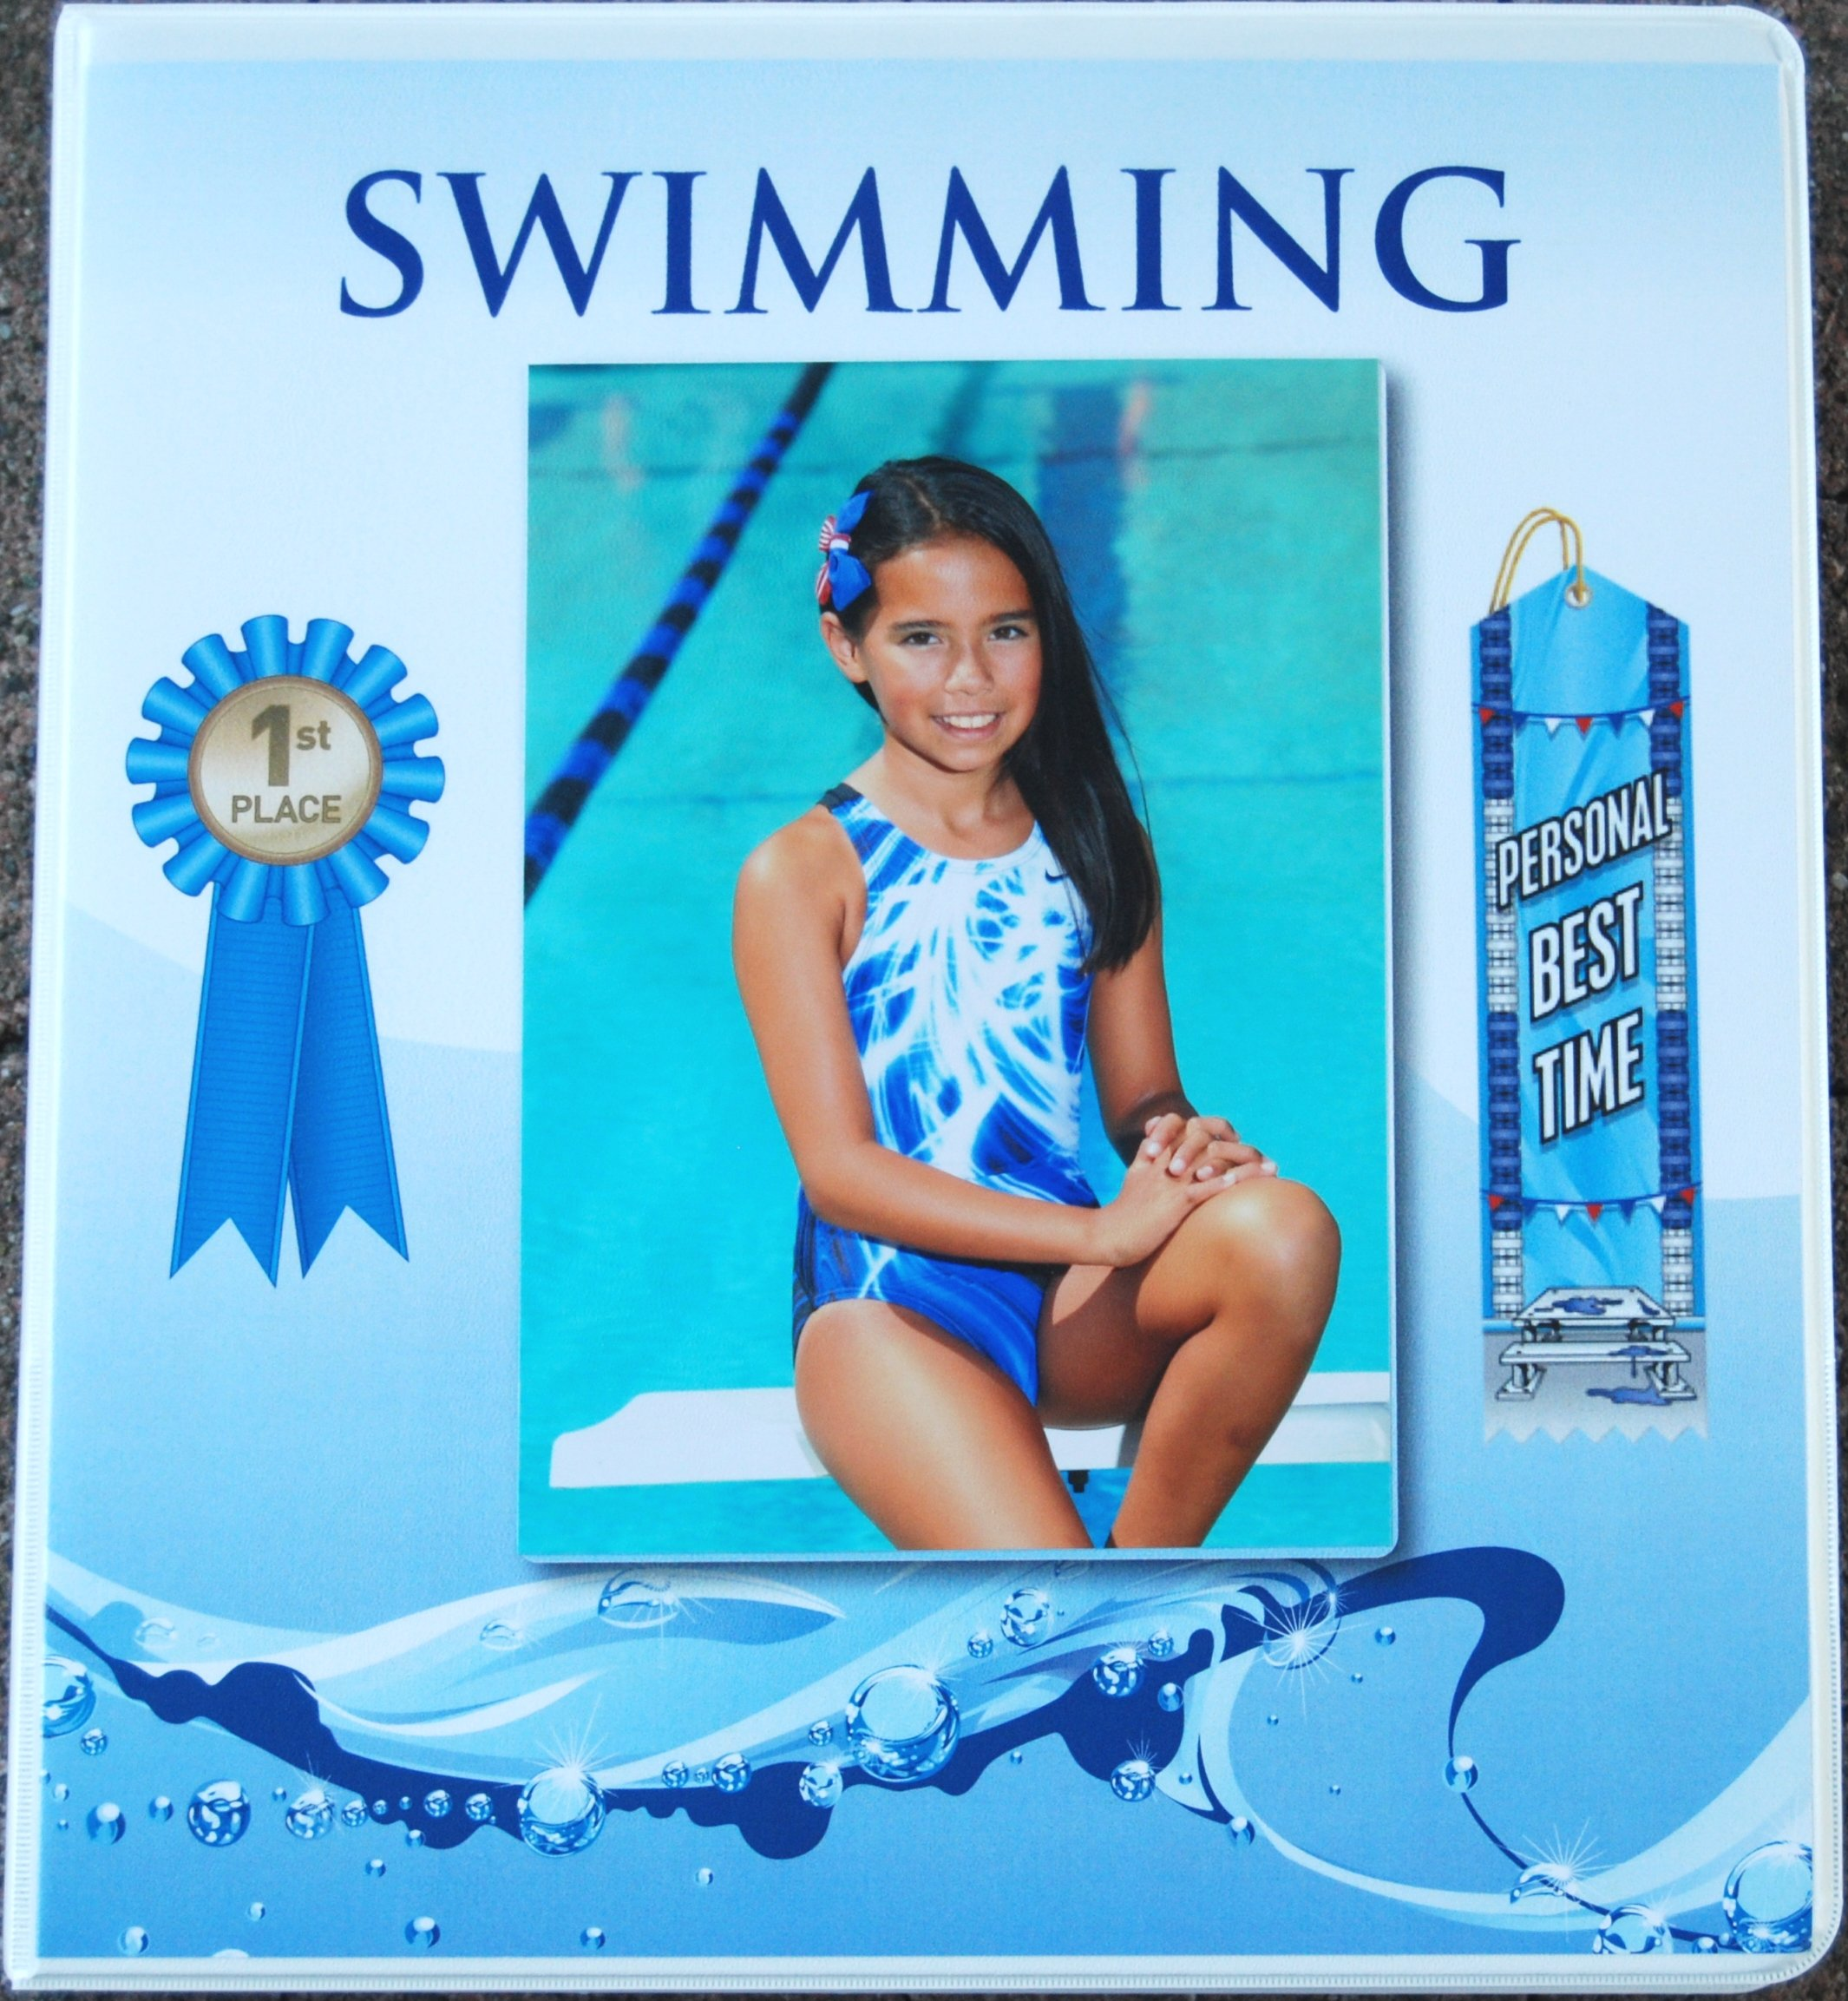 Swimming Award Ribbon BINDER Album Organizer with 15 pages Album Holder Display Gift Track and Field Gymnastics by Mercurydean (Image #6)